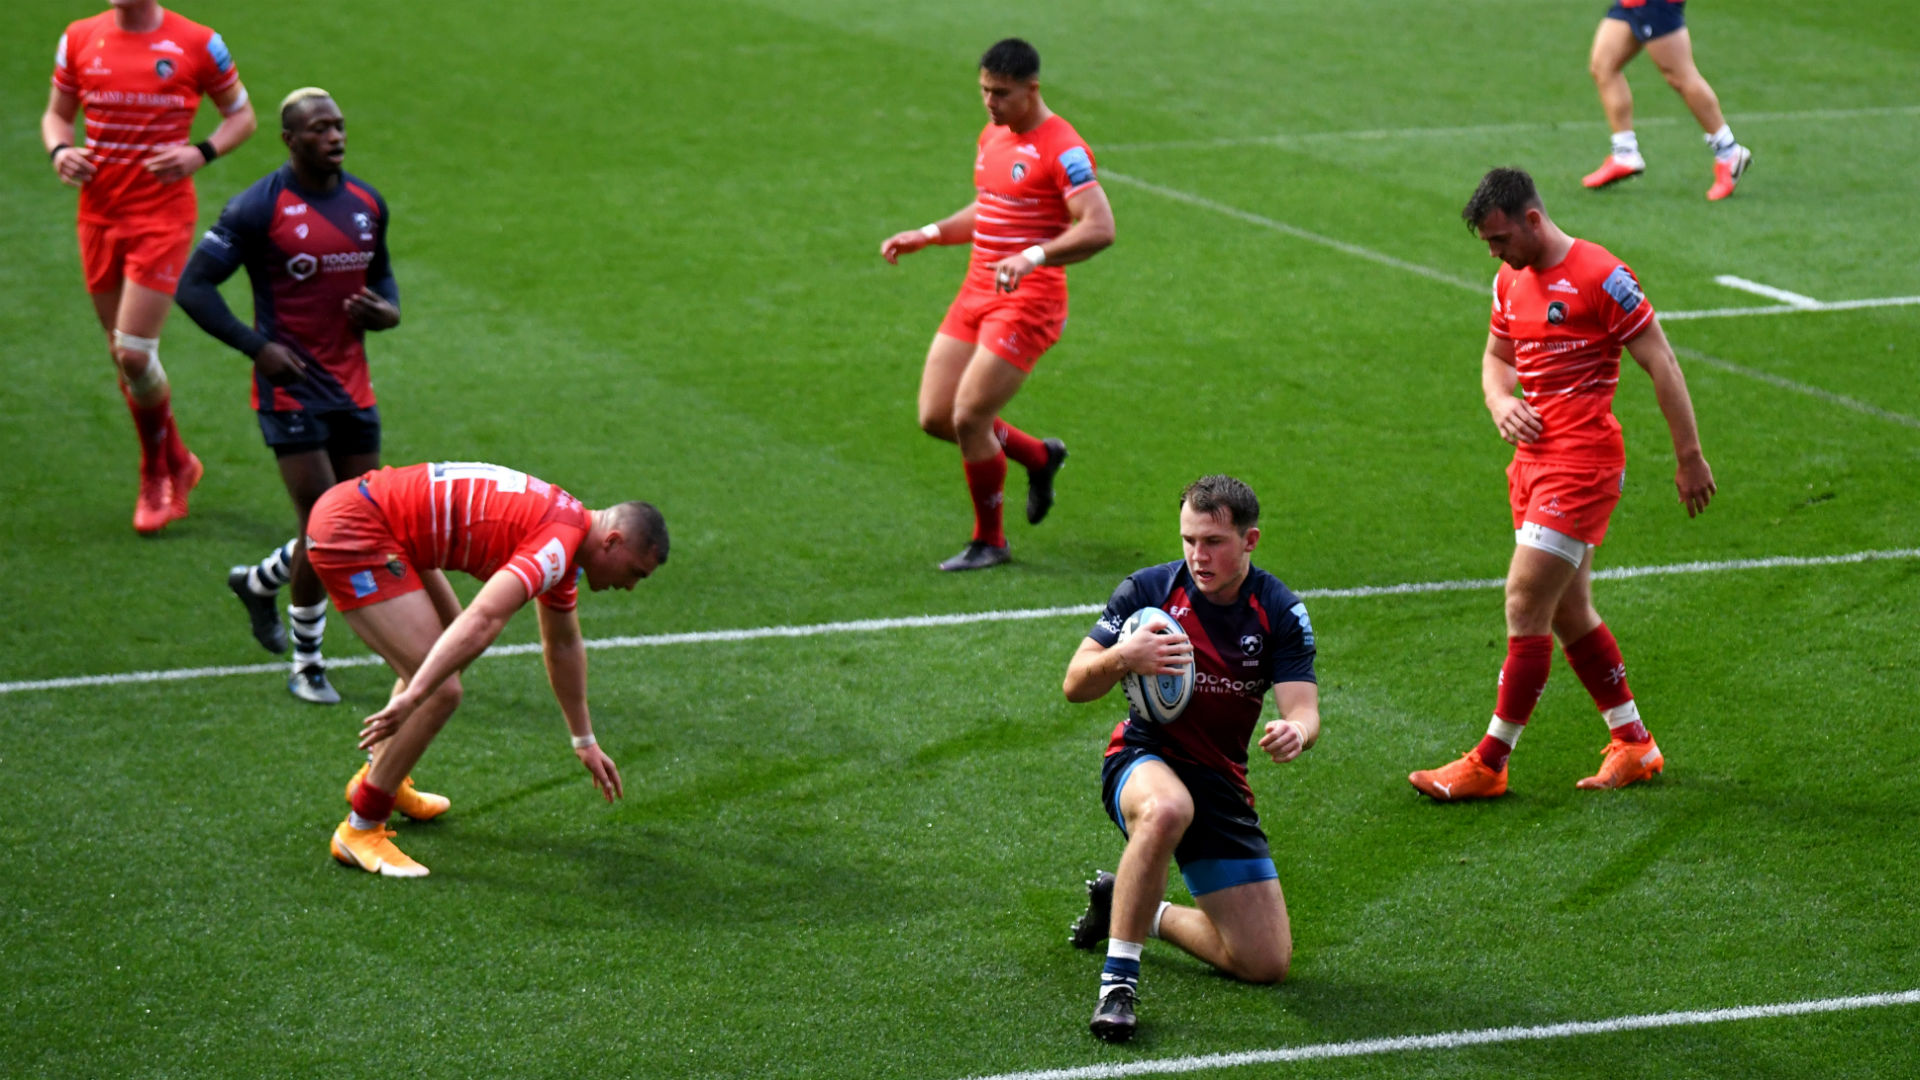 A bonus-point 40-3 victory over Leicester Tigers boosted Bristol's hopes of finishing in the Premiership's play-off places.